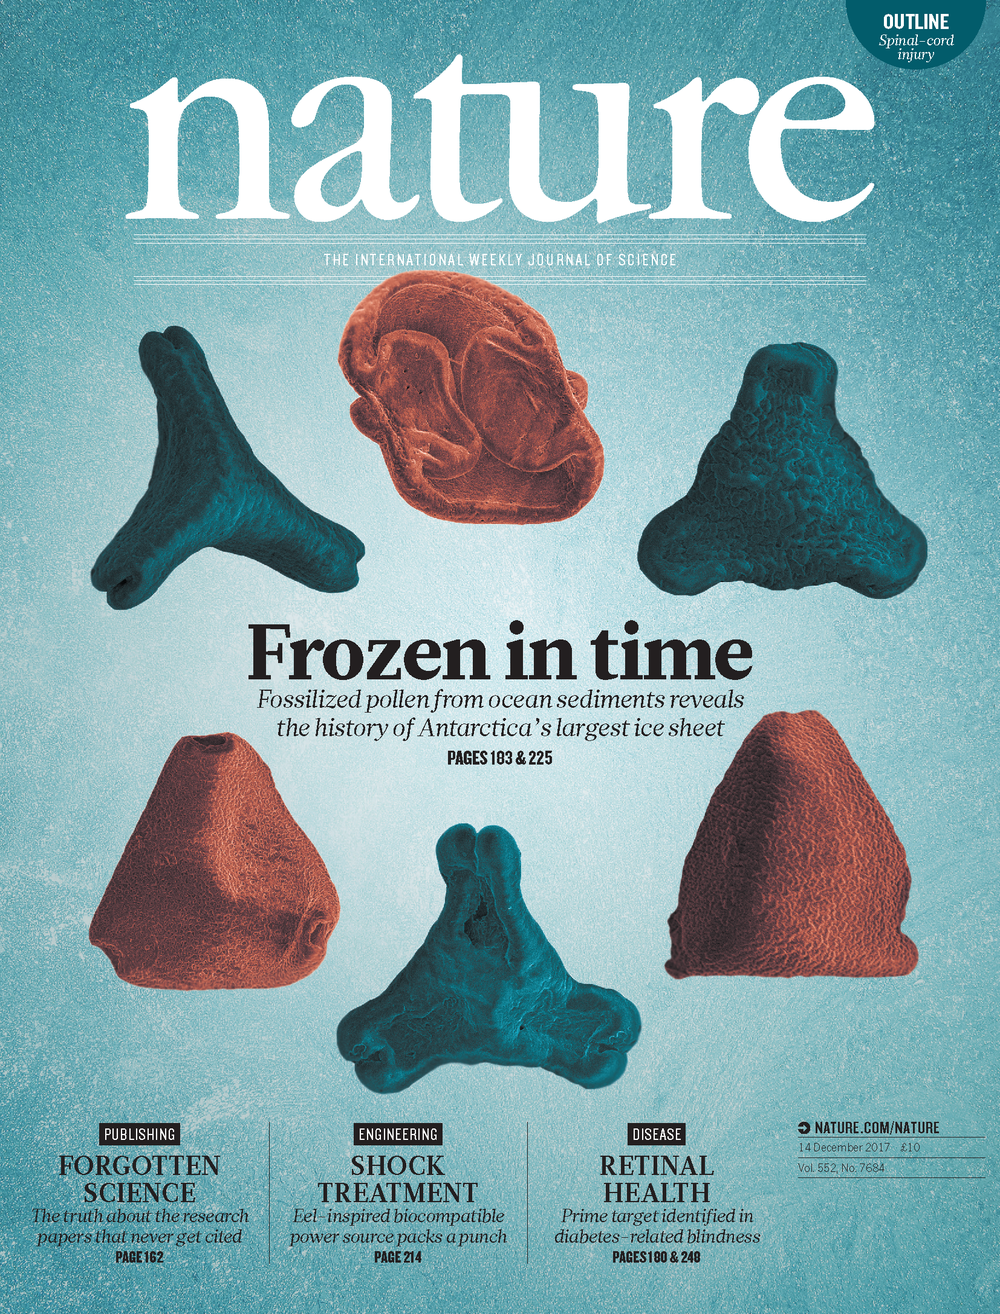 Cover of the December 2017 issue of Nature magazine. Credit: Nature.